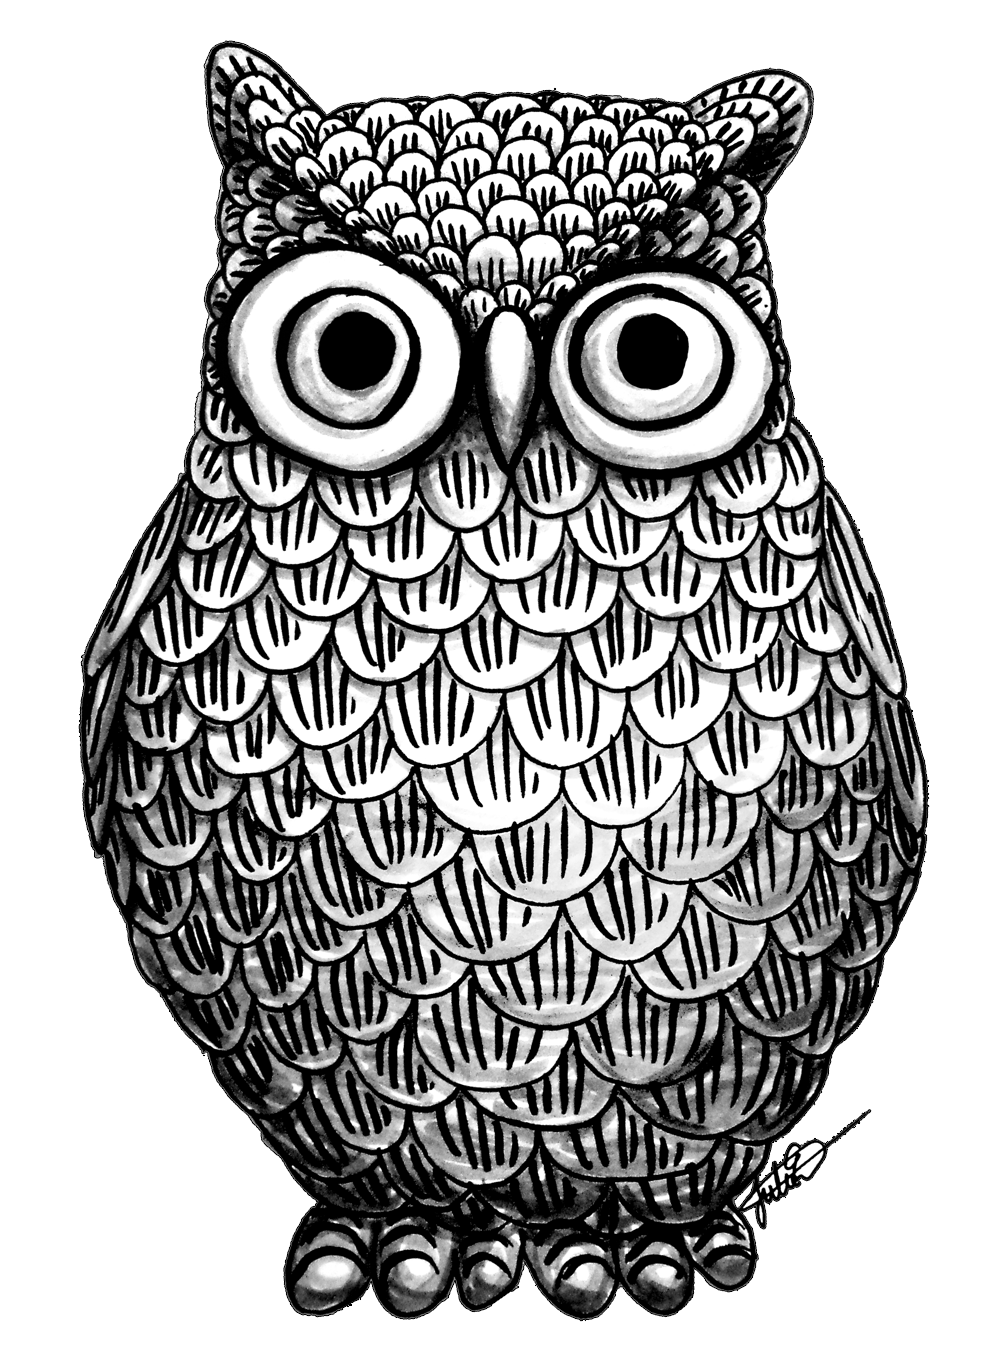 drawing desings owl